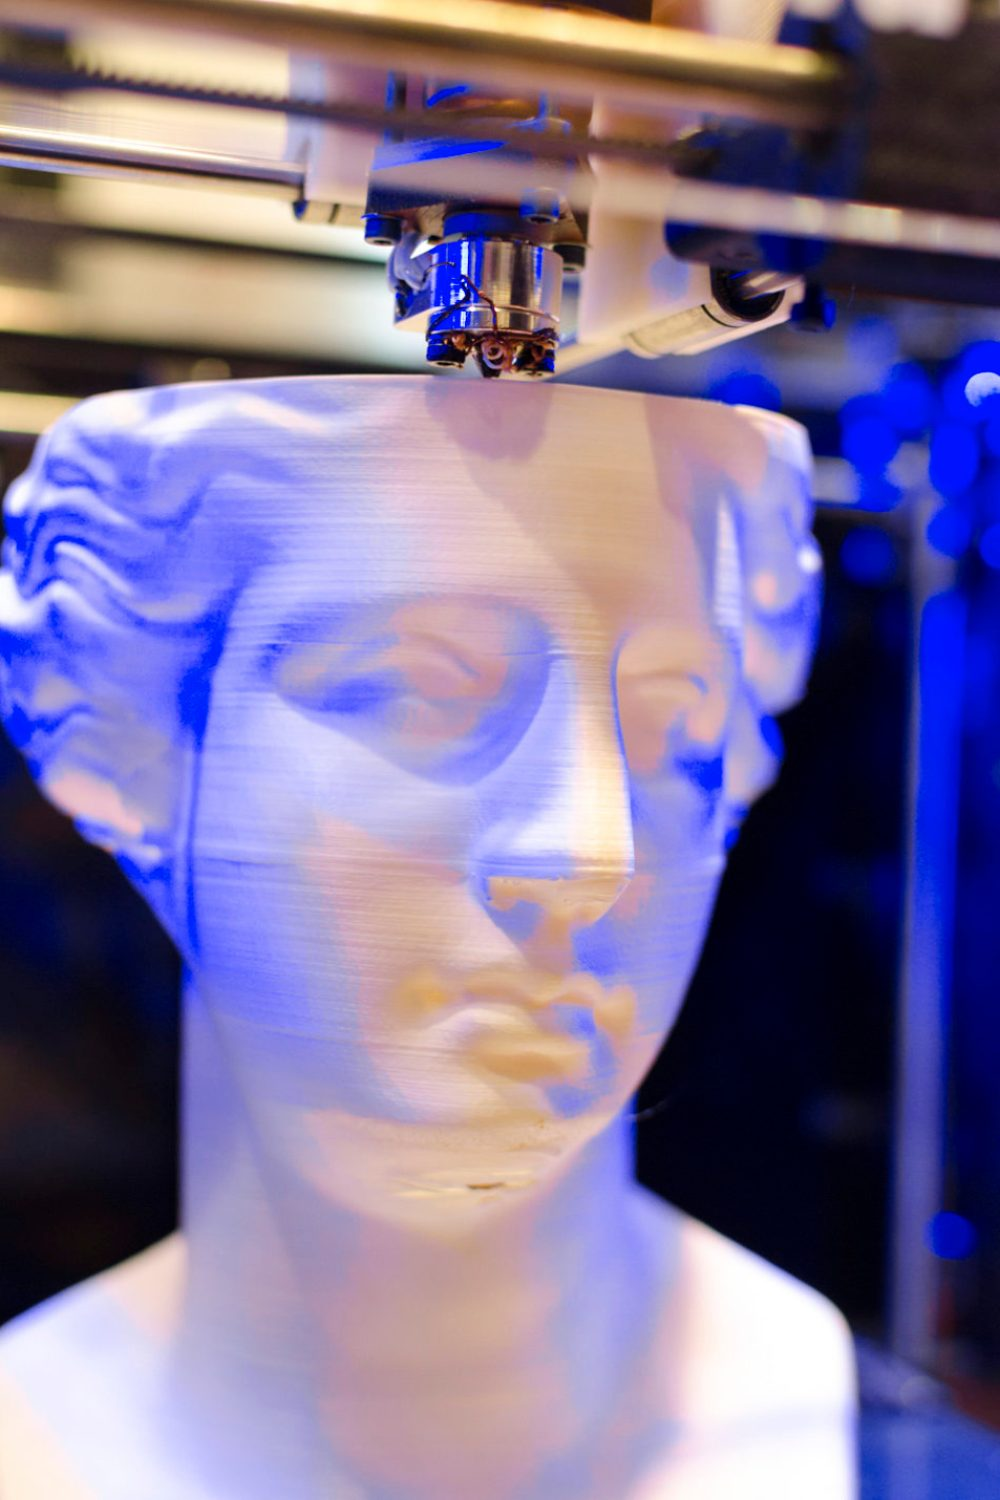 Plastic head printed on 3D printer.